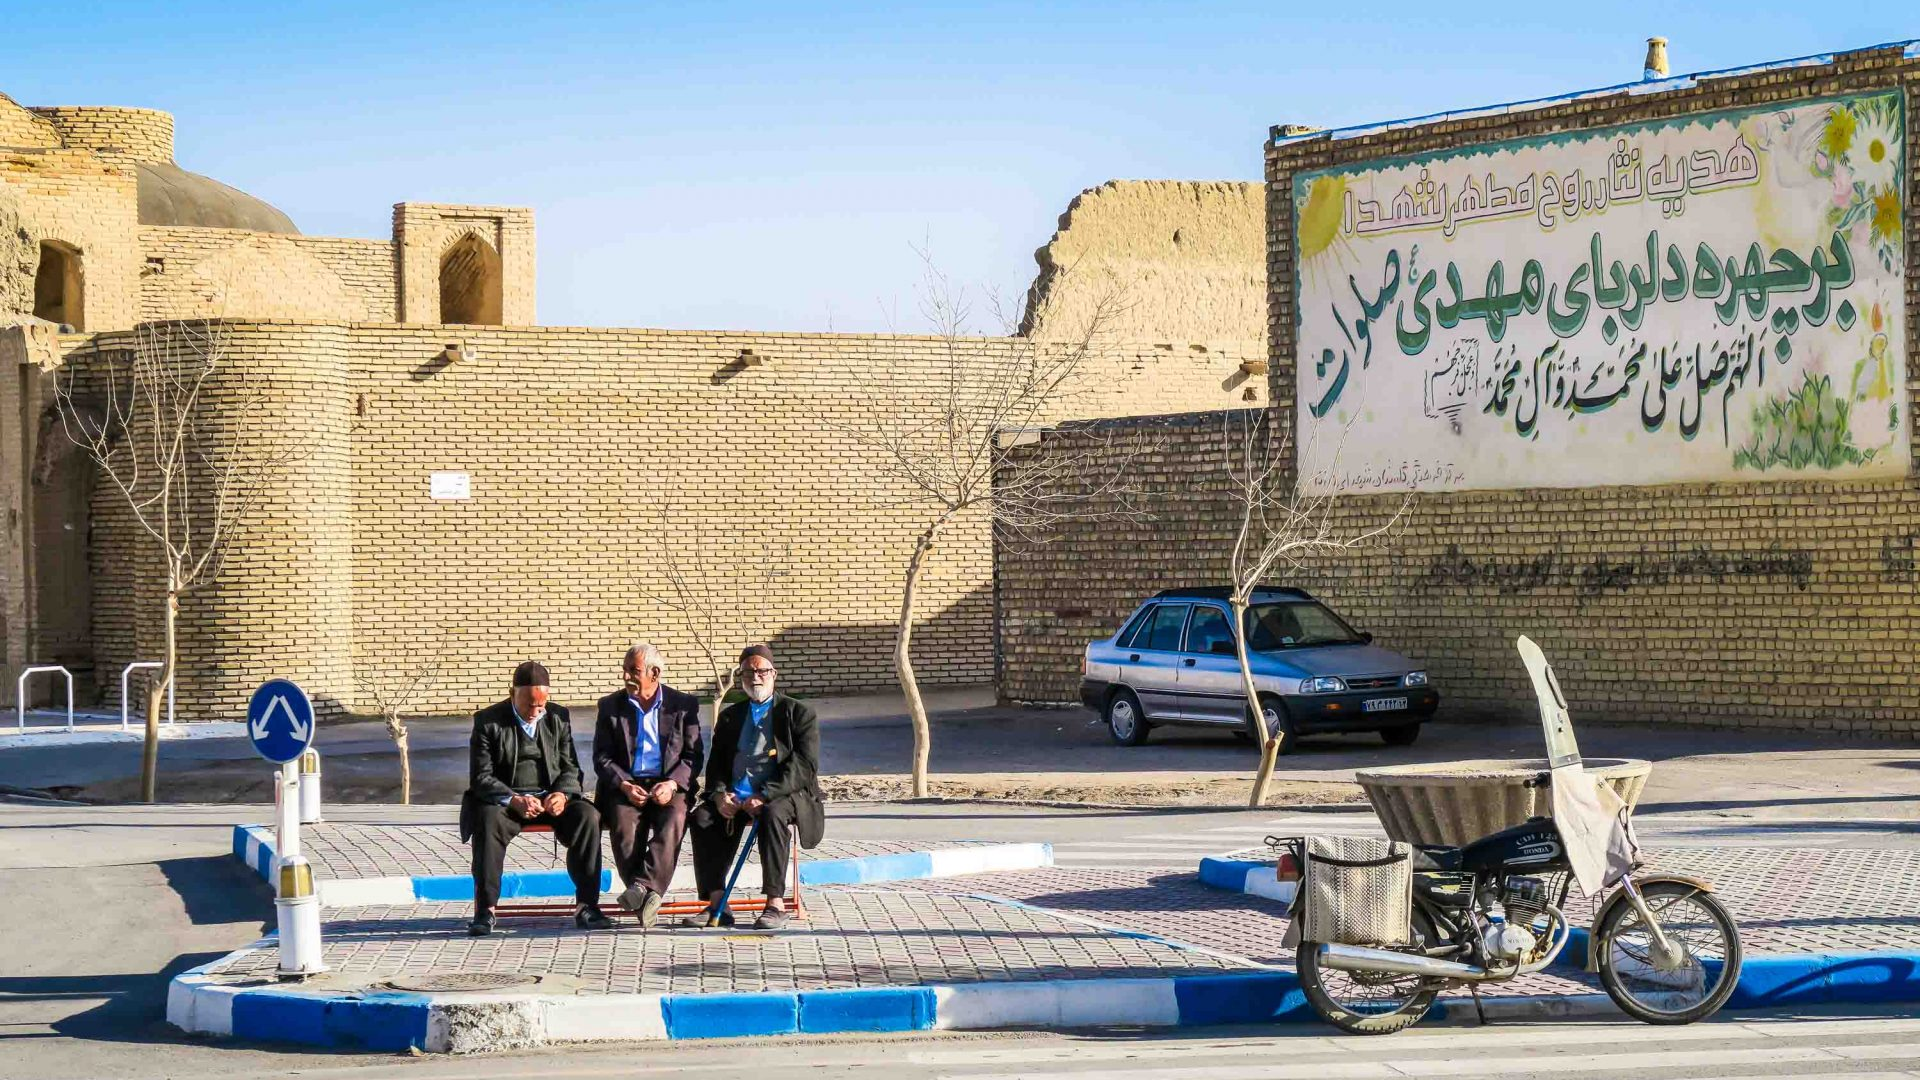 Locals sit in the street in Varzaneh.